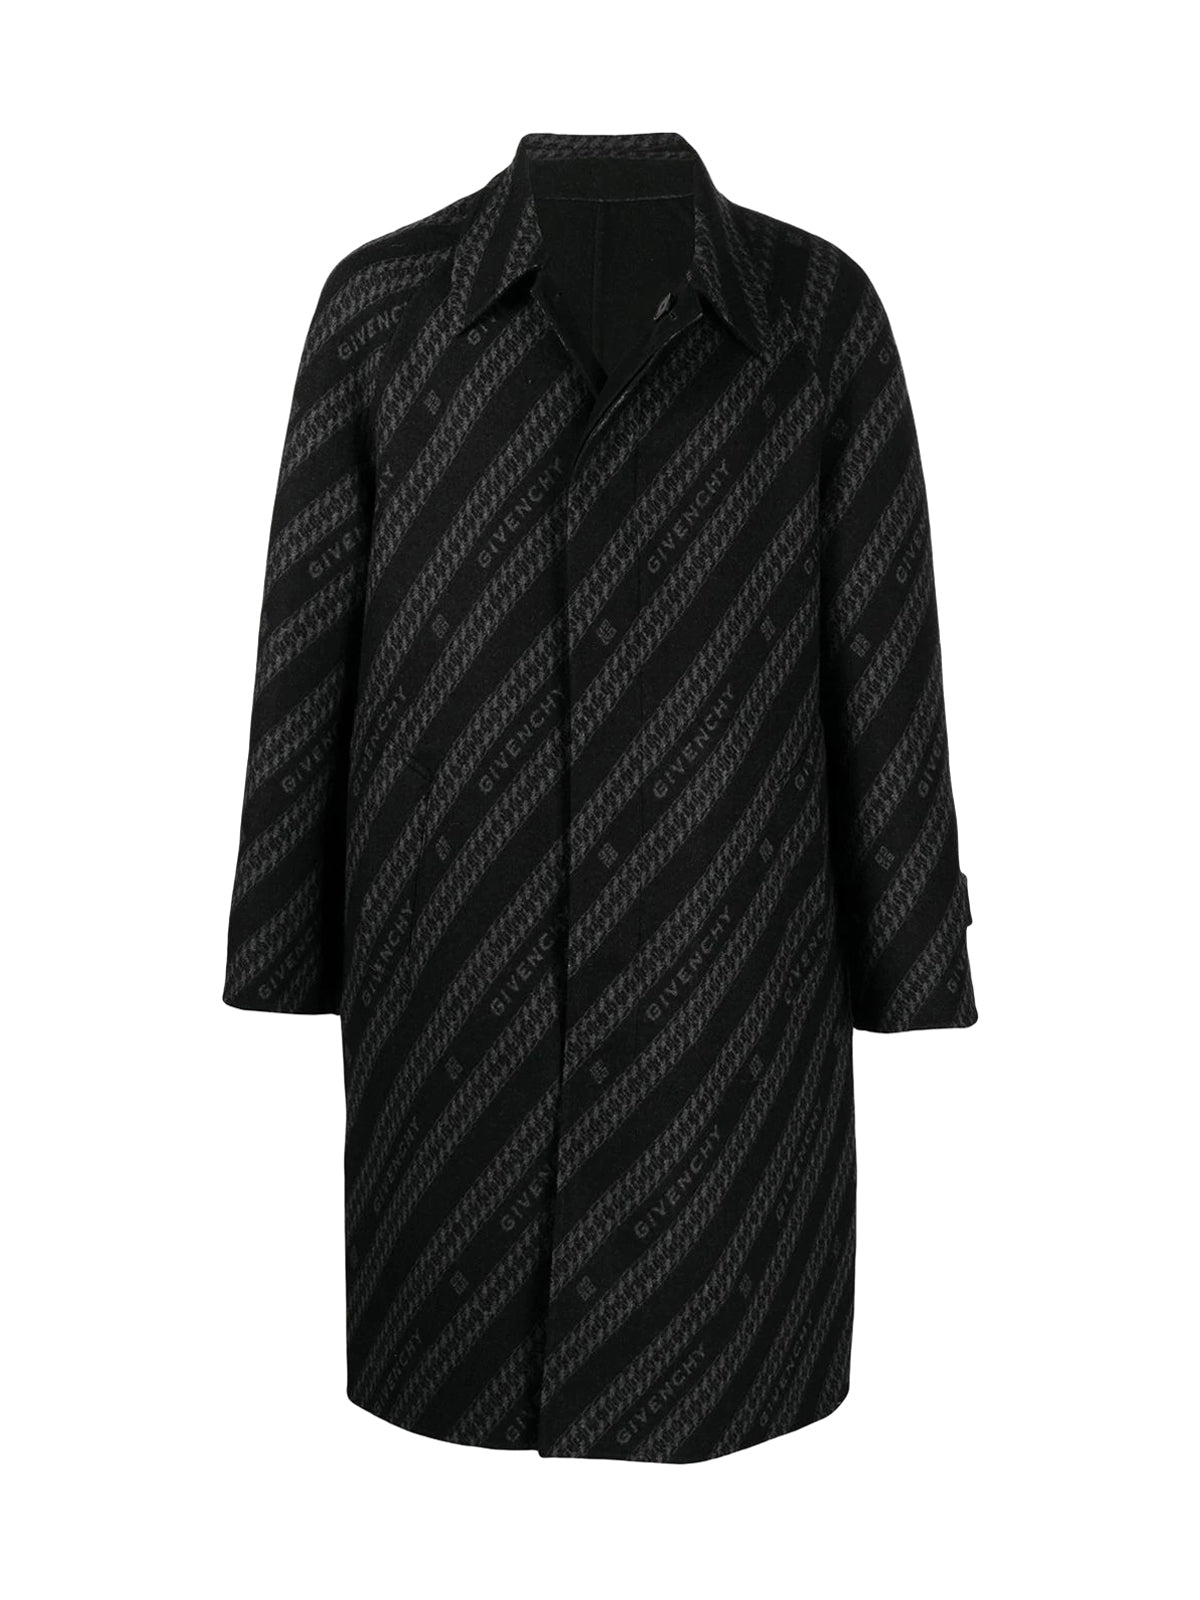 GIVENCHY CHAIN REVERSIBLE COAT IN JACQUARD